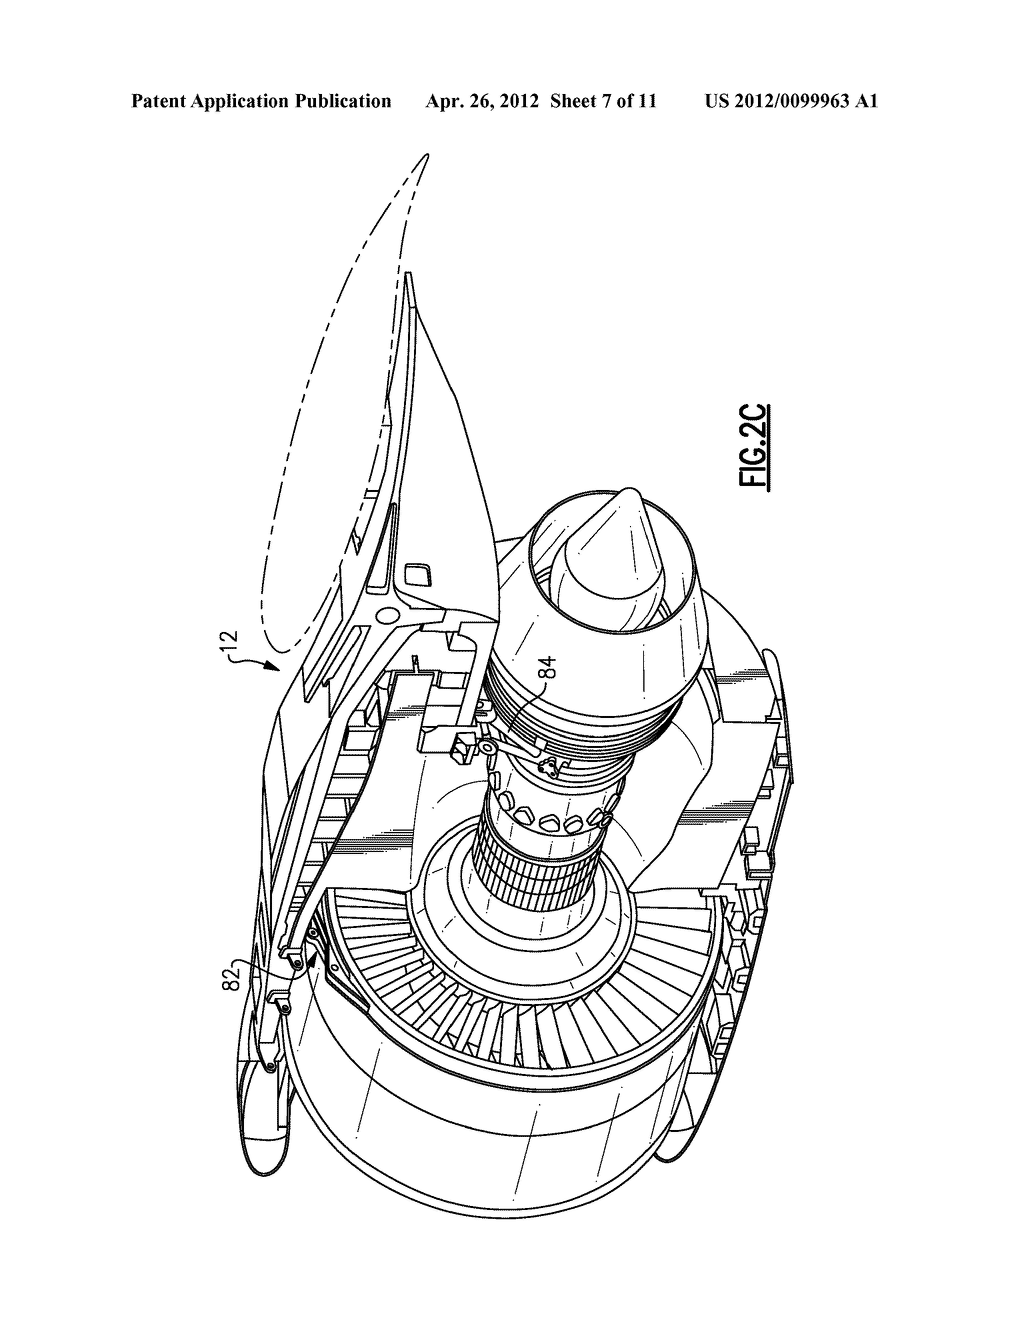 Engine Mount System For A Turbofan Gas Turbine Diagram Mounting Schematic And Image 08